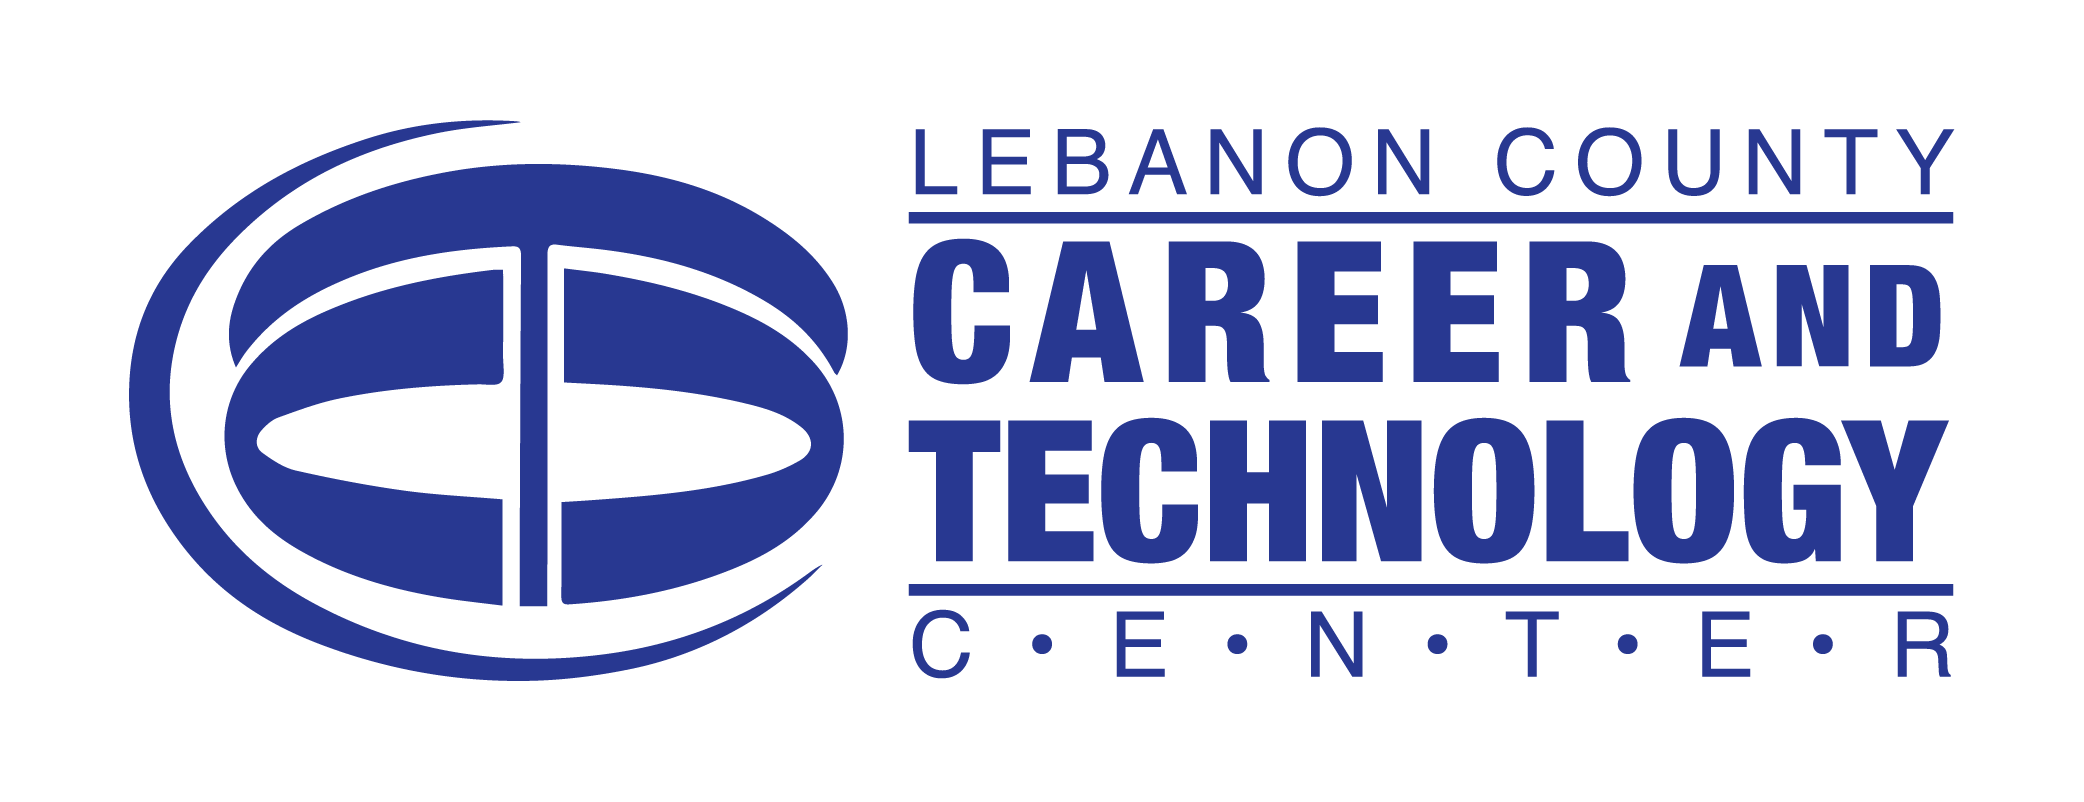 Lebanon County Career and Technology Center